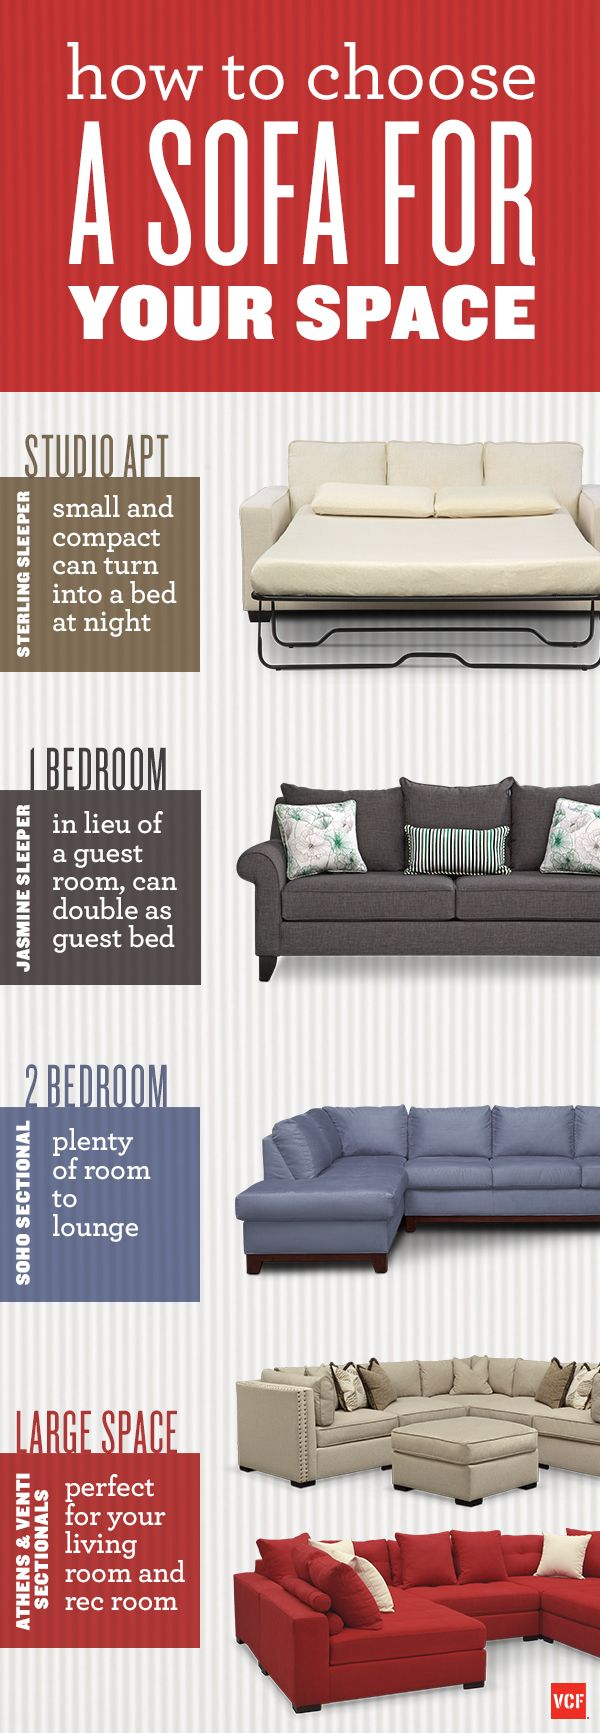 97 best how to shop images on pinterest city furniture living